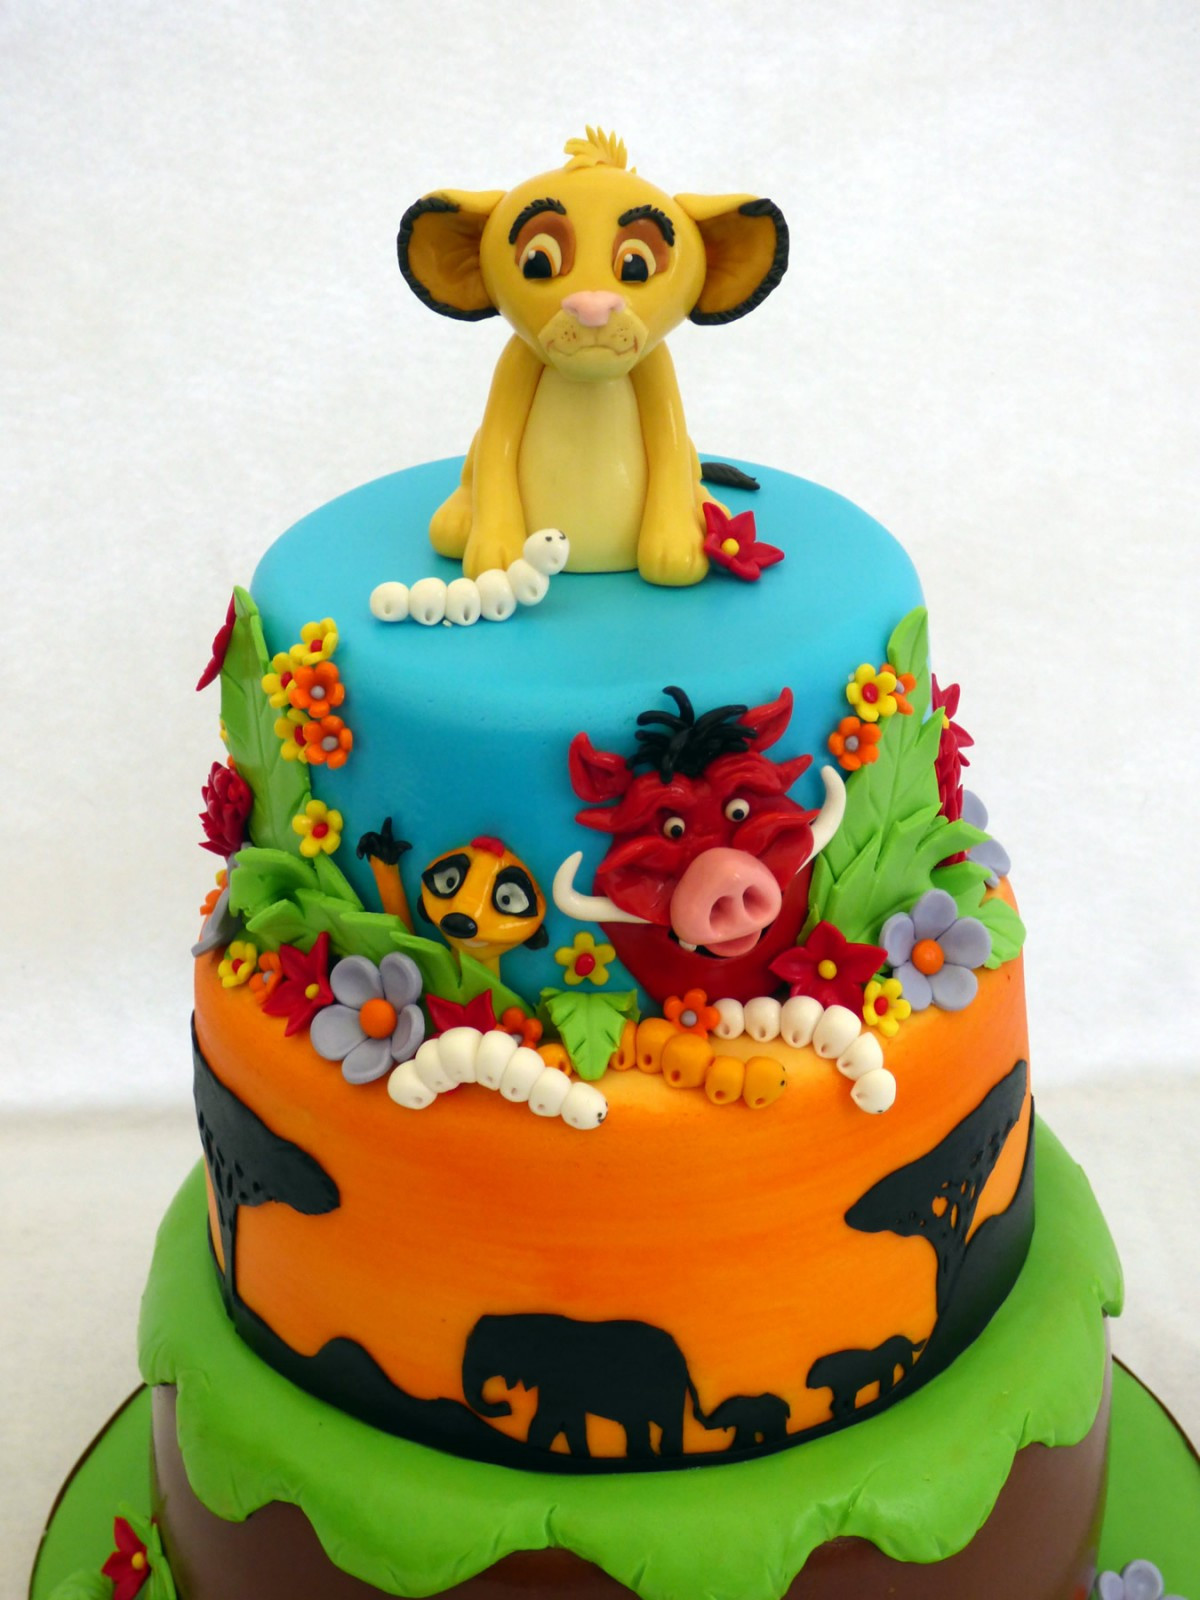 Best ideas about Lion King Birthday Cake . Save or Pin Lion King 3 Tier Birthday Cake Susie s Cakes Now.